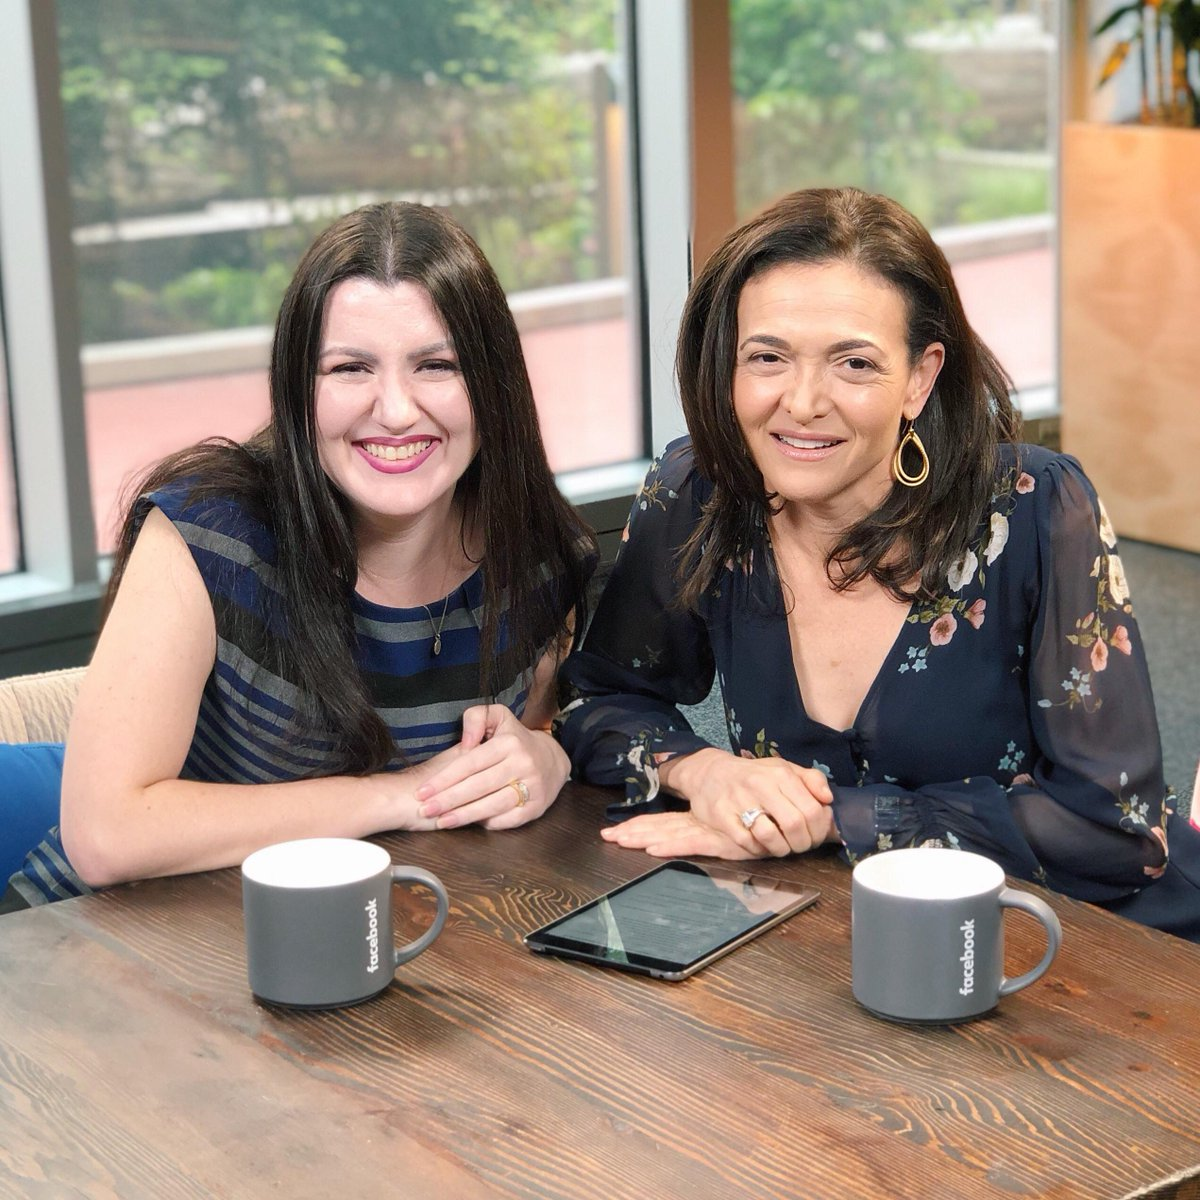 Sheryl Sandberg just went Live with Fidji Simo, new head of the Facebook app, to chat about Fidji's new role, some of our recent announcements, and her  advice for women in tech. Check it out:  https://www.facebook.com/sheryl/videos/10161676945990177/…